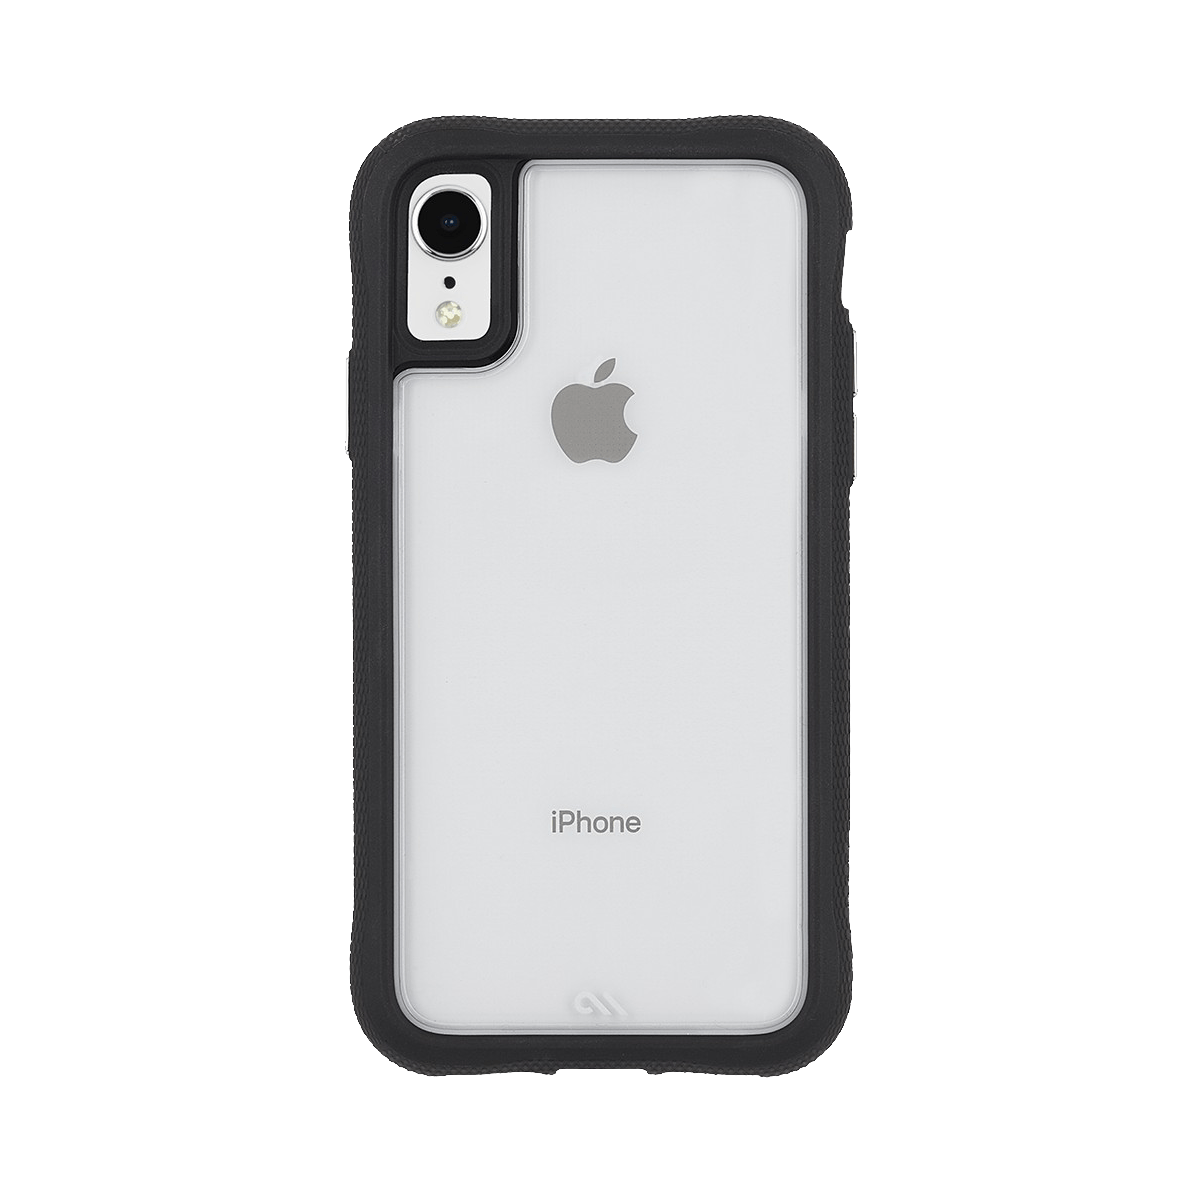 Case-Mate Translucent Case for iPhone XR in Clear/Black